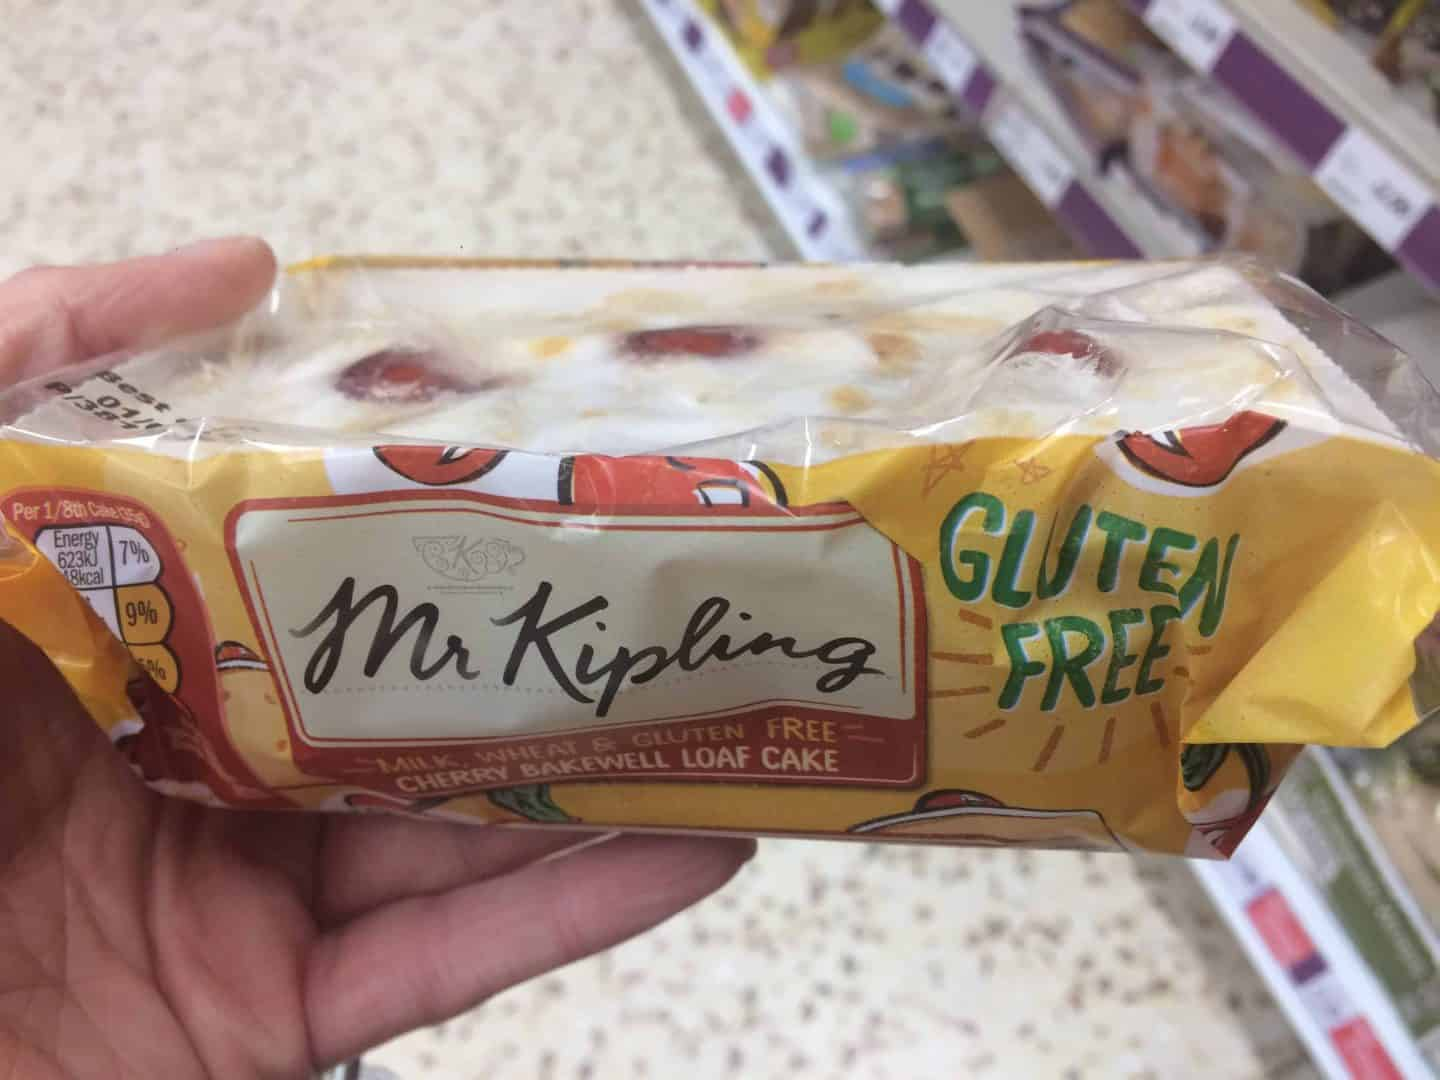 February Favourites: Mr Kipling cakes and Tesco's free from ready meals